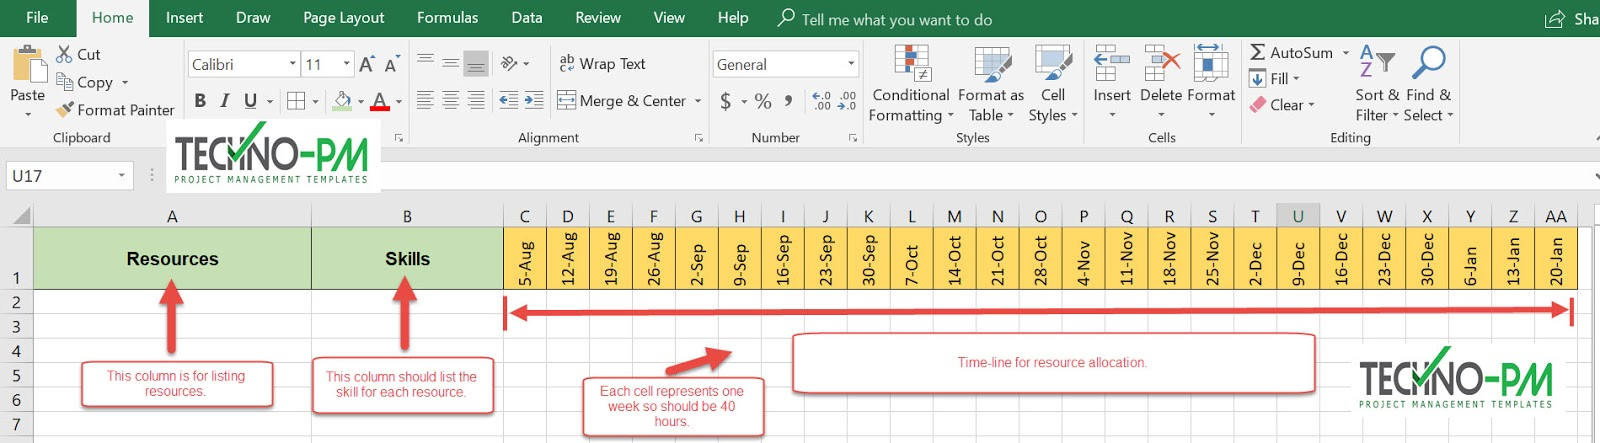 Excel based Resource Plan Template - Free Project Management Templates